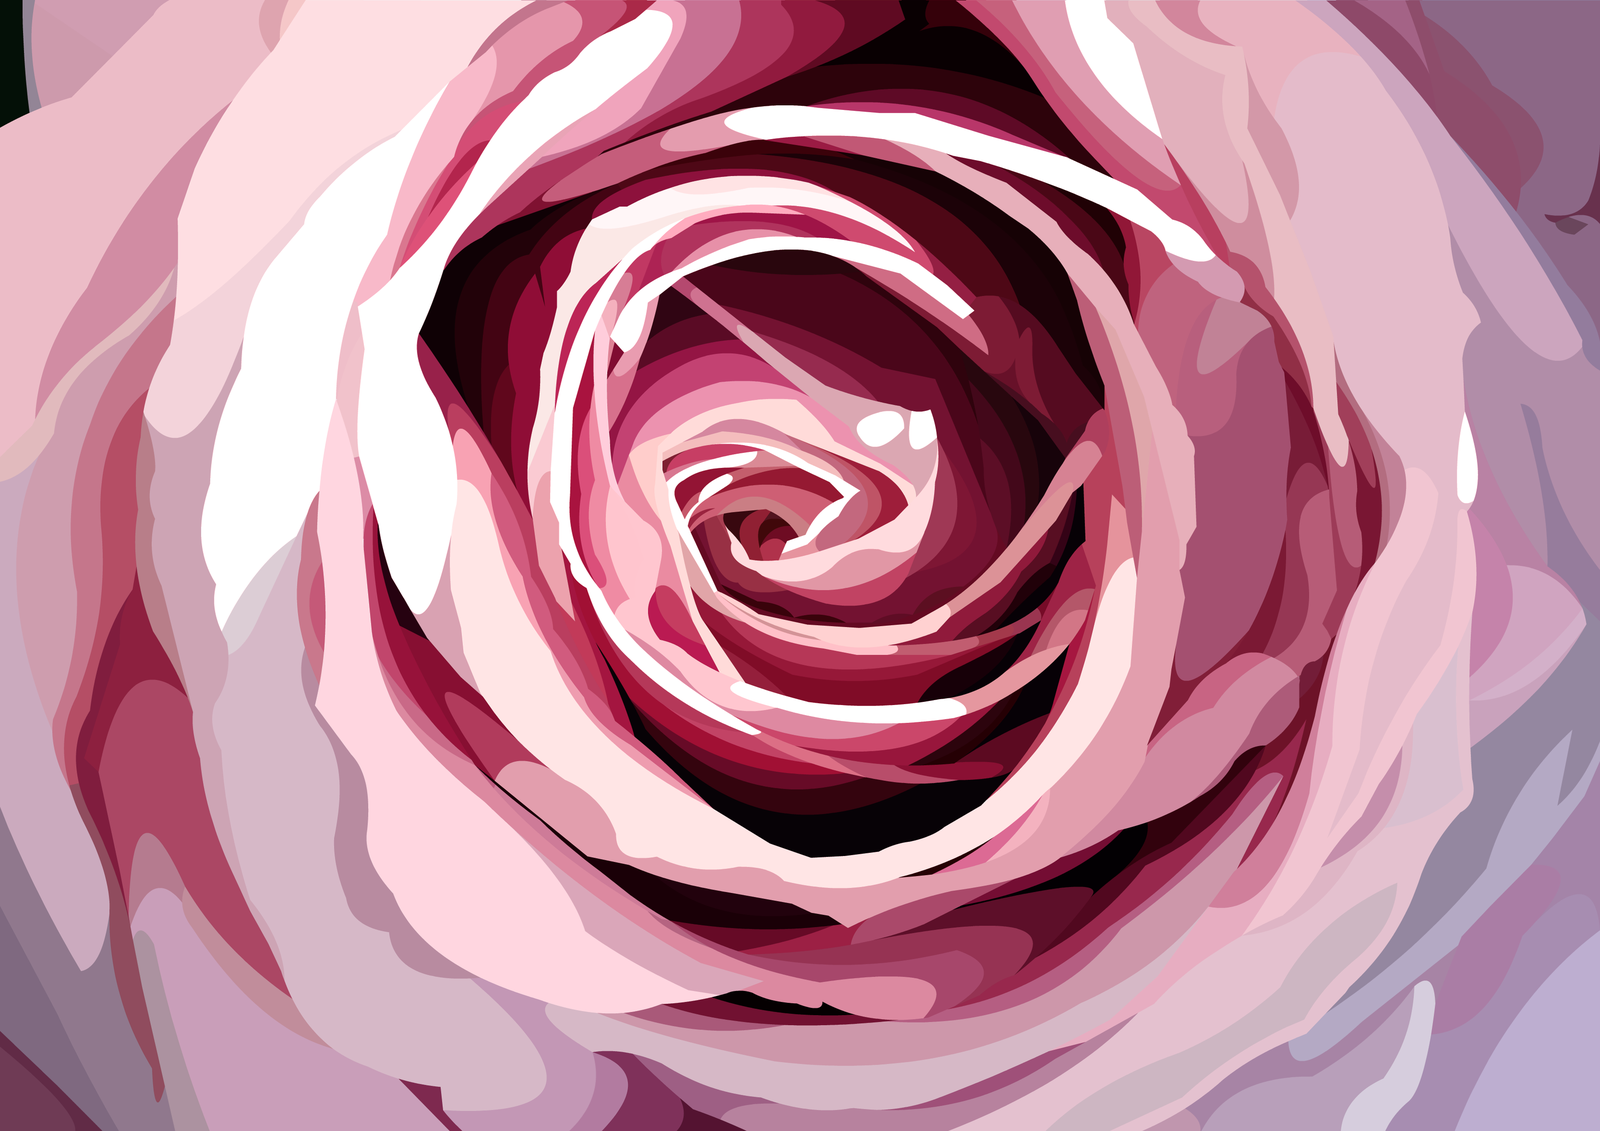 pink_rose_vector_by_elviranl-d6ogdk5